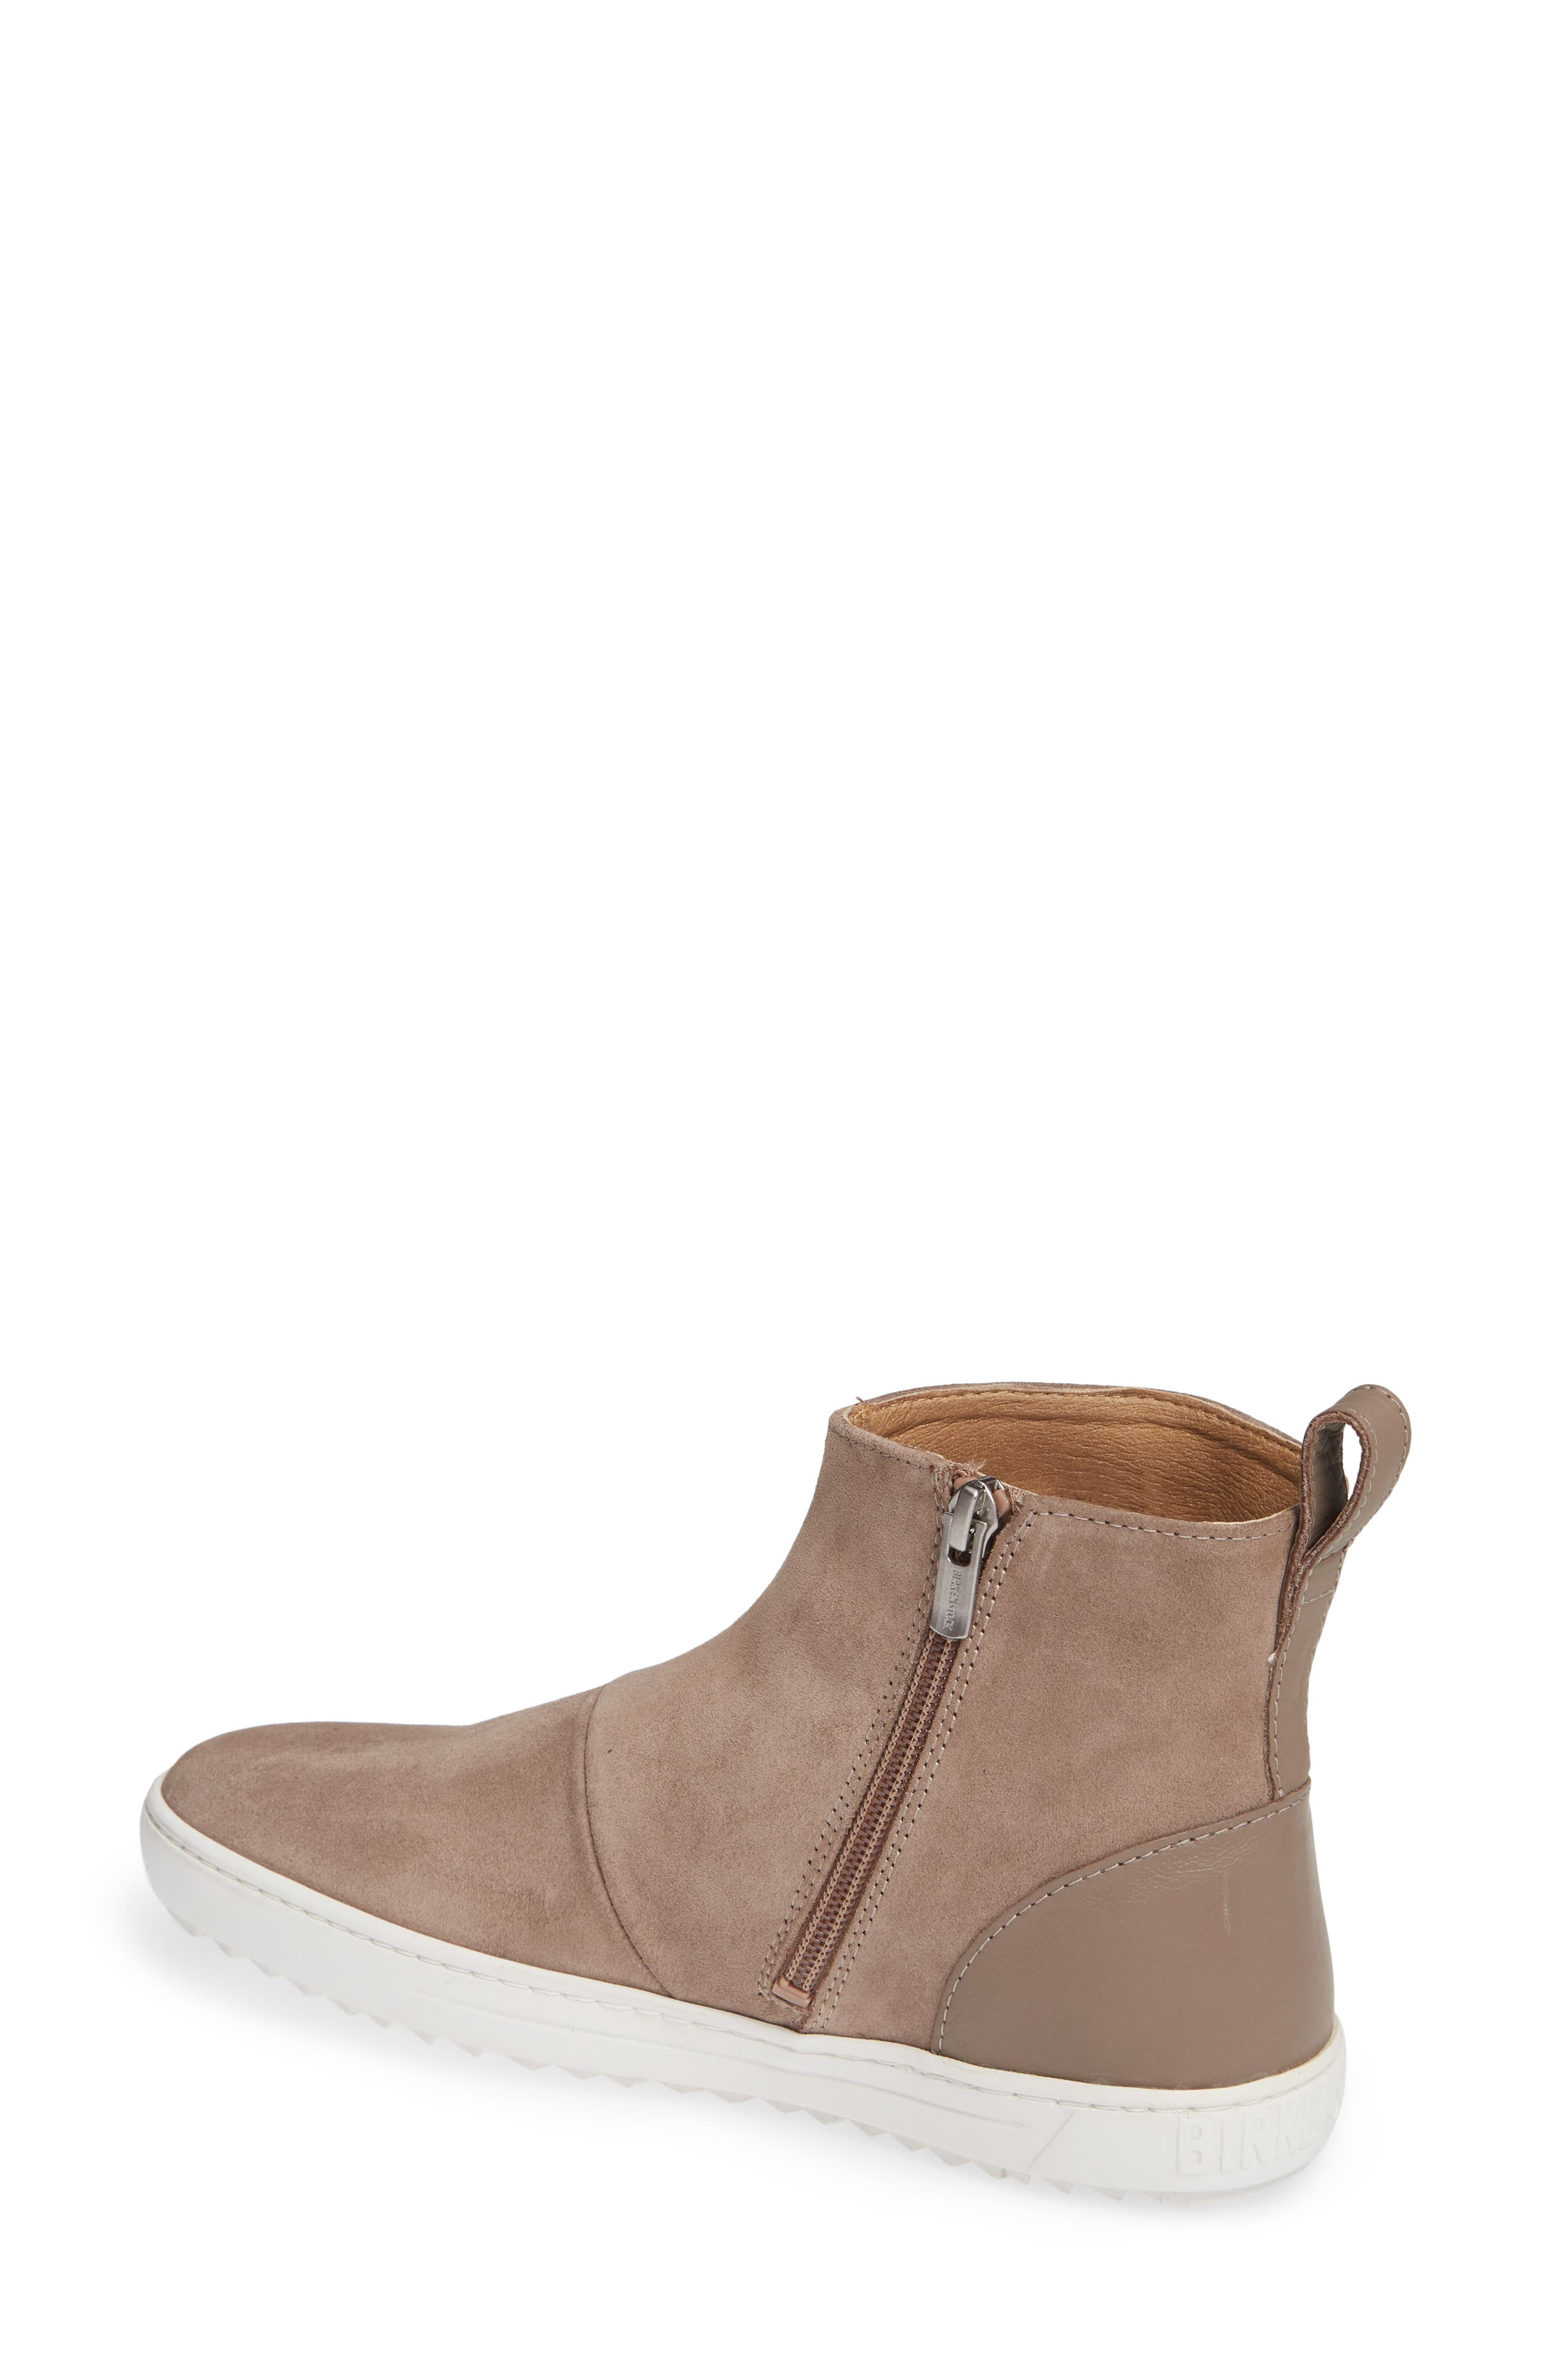 Myra High Top Sneaker,                             Alternate thumbnail 2, color,                             TAUPE SUEDE